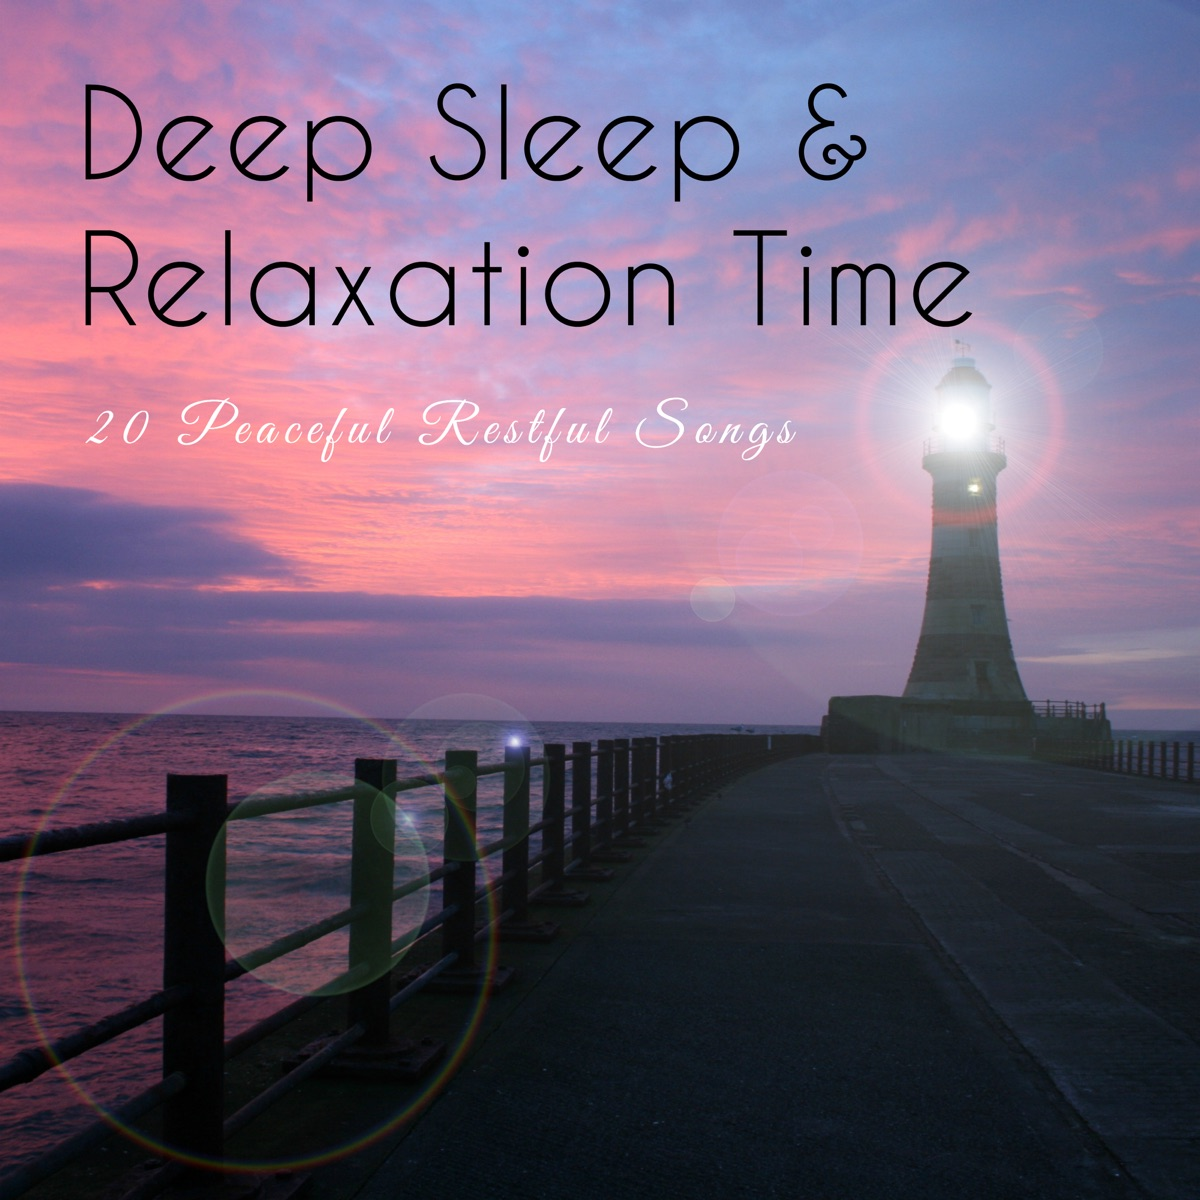 Deep Sleep & Relaxation Time – 20 Peaceful Restful Songs to Help You